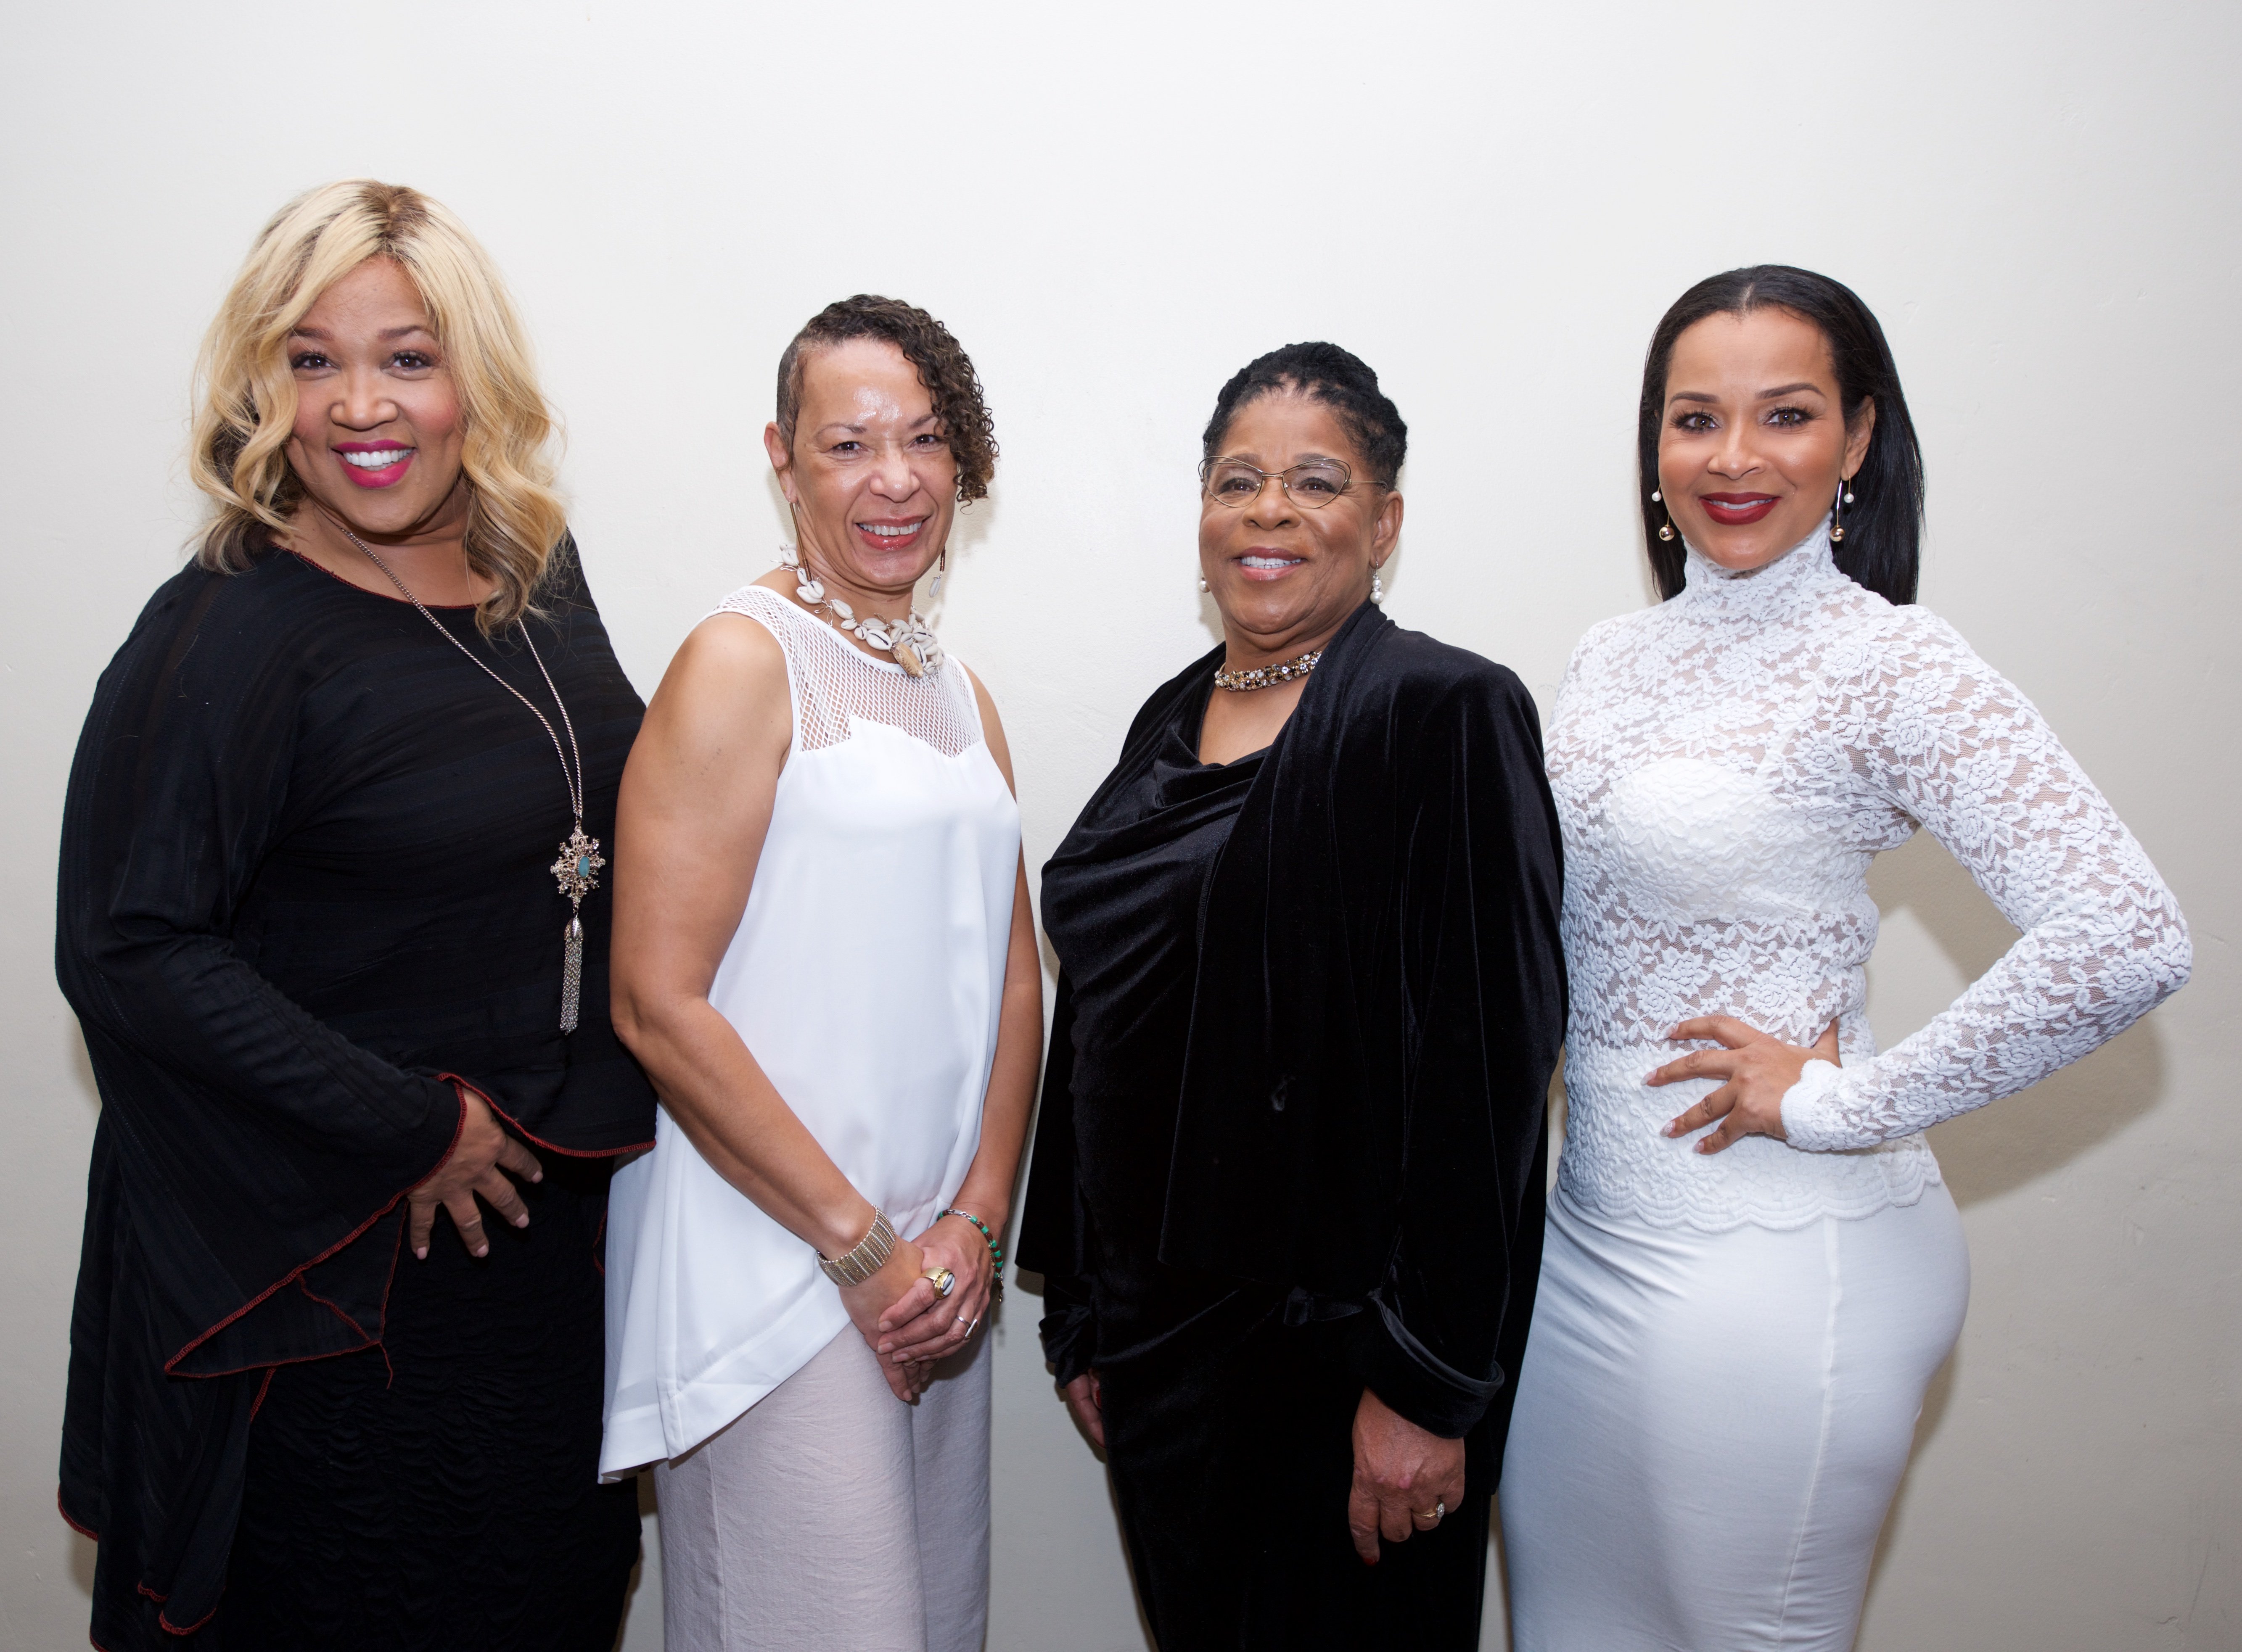 L-R: Celebrity Presenter of the Flozelle Woodmore Memorial Award, Star on Freeform Network Kym Whitley, Community Champion Award, Honoree Dr. Cheryl Grills, Ph.D. A New Way Of Life Re-Entry Project Founder, Susan Burton, Celebrity Presenter of the Flozelle Woodmore Memorial Award, Actress Lisa Raye: The Real McCoy